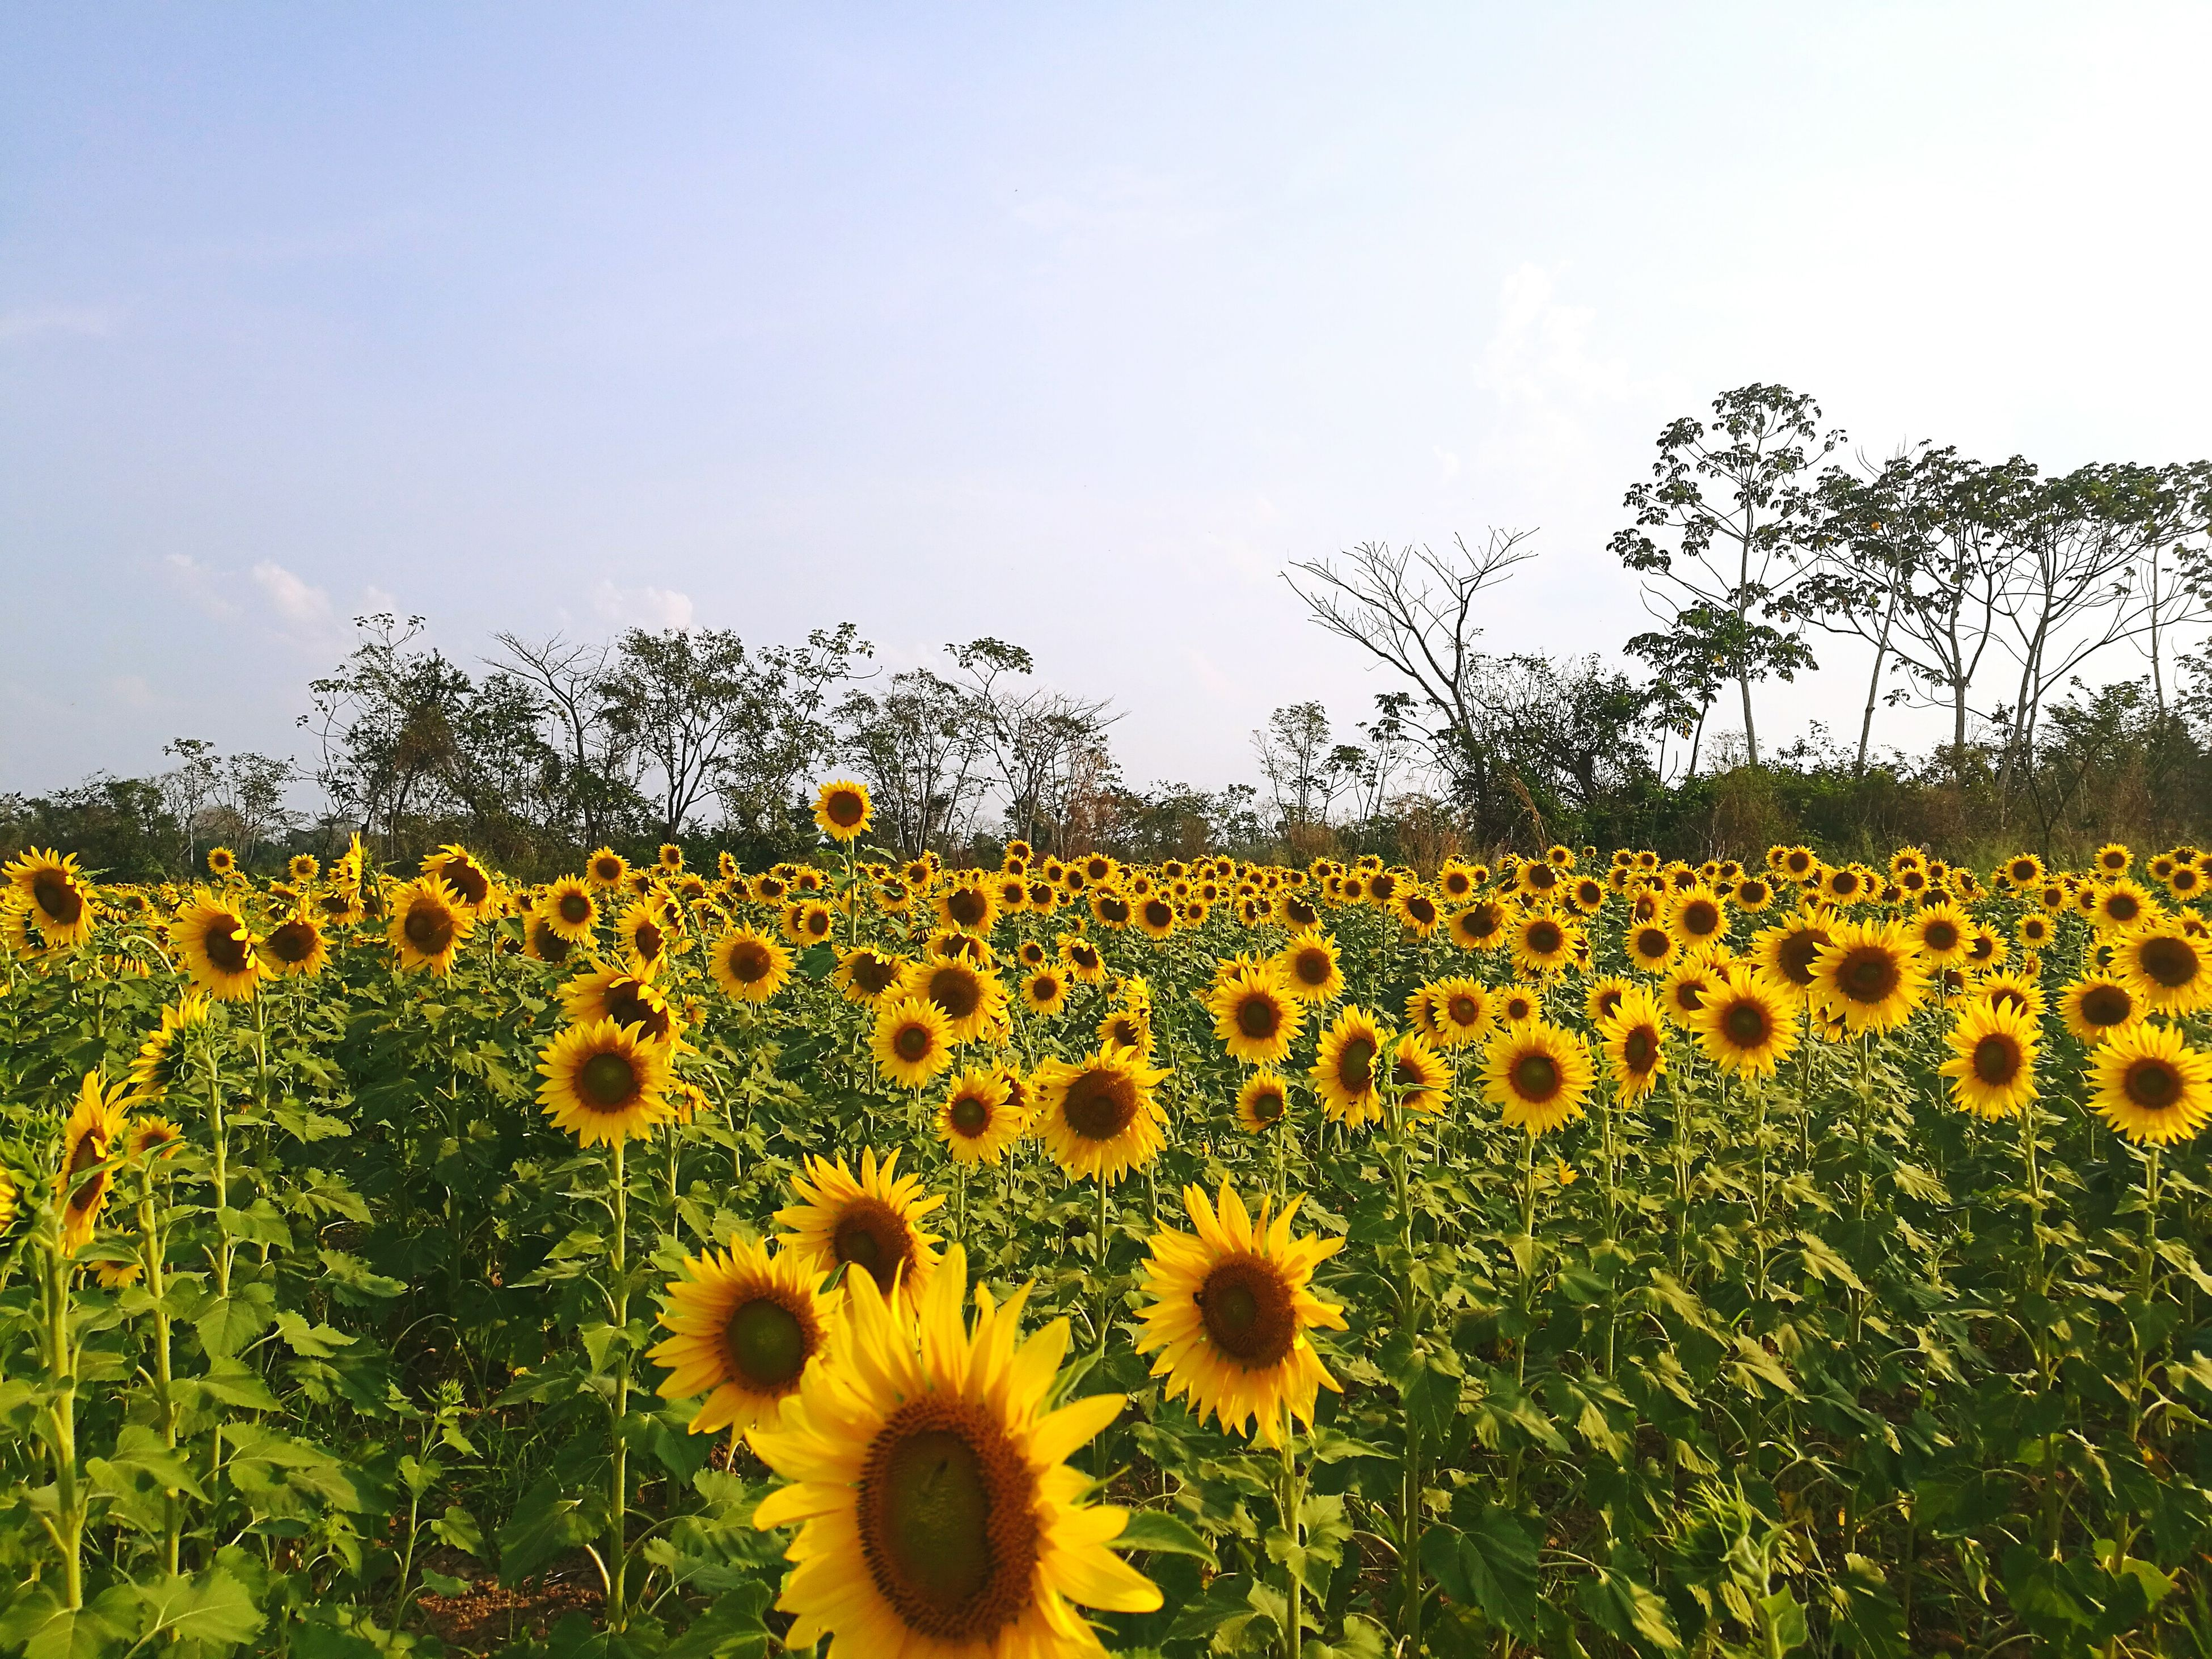 flower, growth, yellow, plant, beauty in nature, nature, field, fragility, botany, sunflower, day, flower head, freshness, outdoors, petal, no people, blooming, sky, flowerbed, black-eyed susan, rural scene, tree, close-up